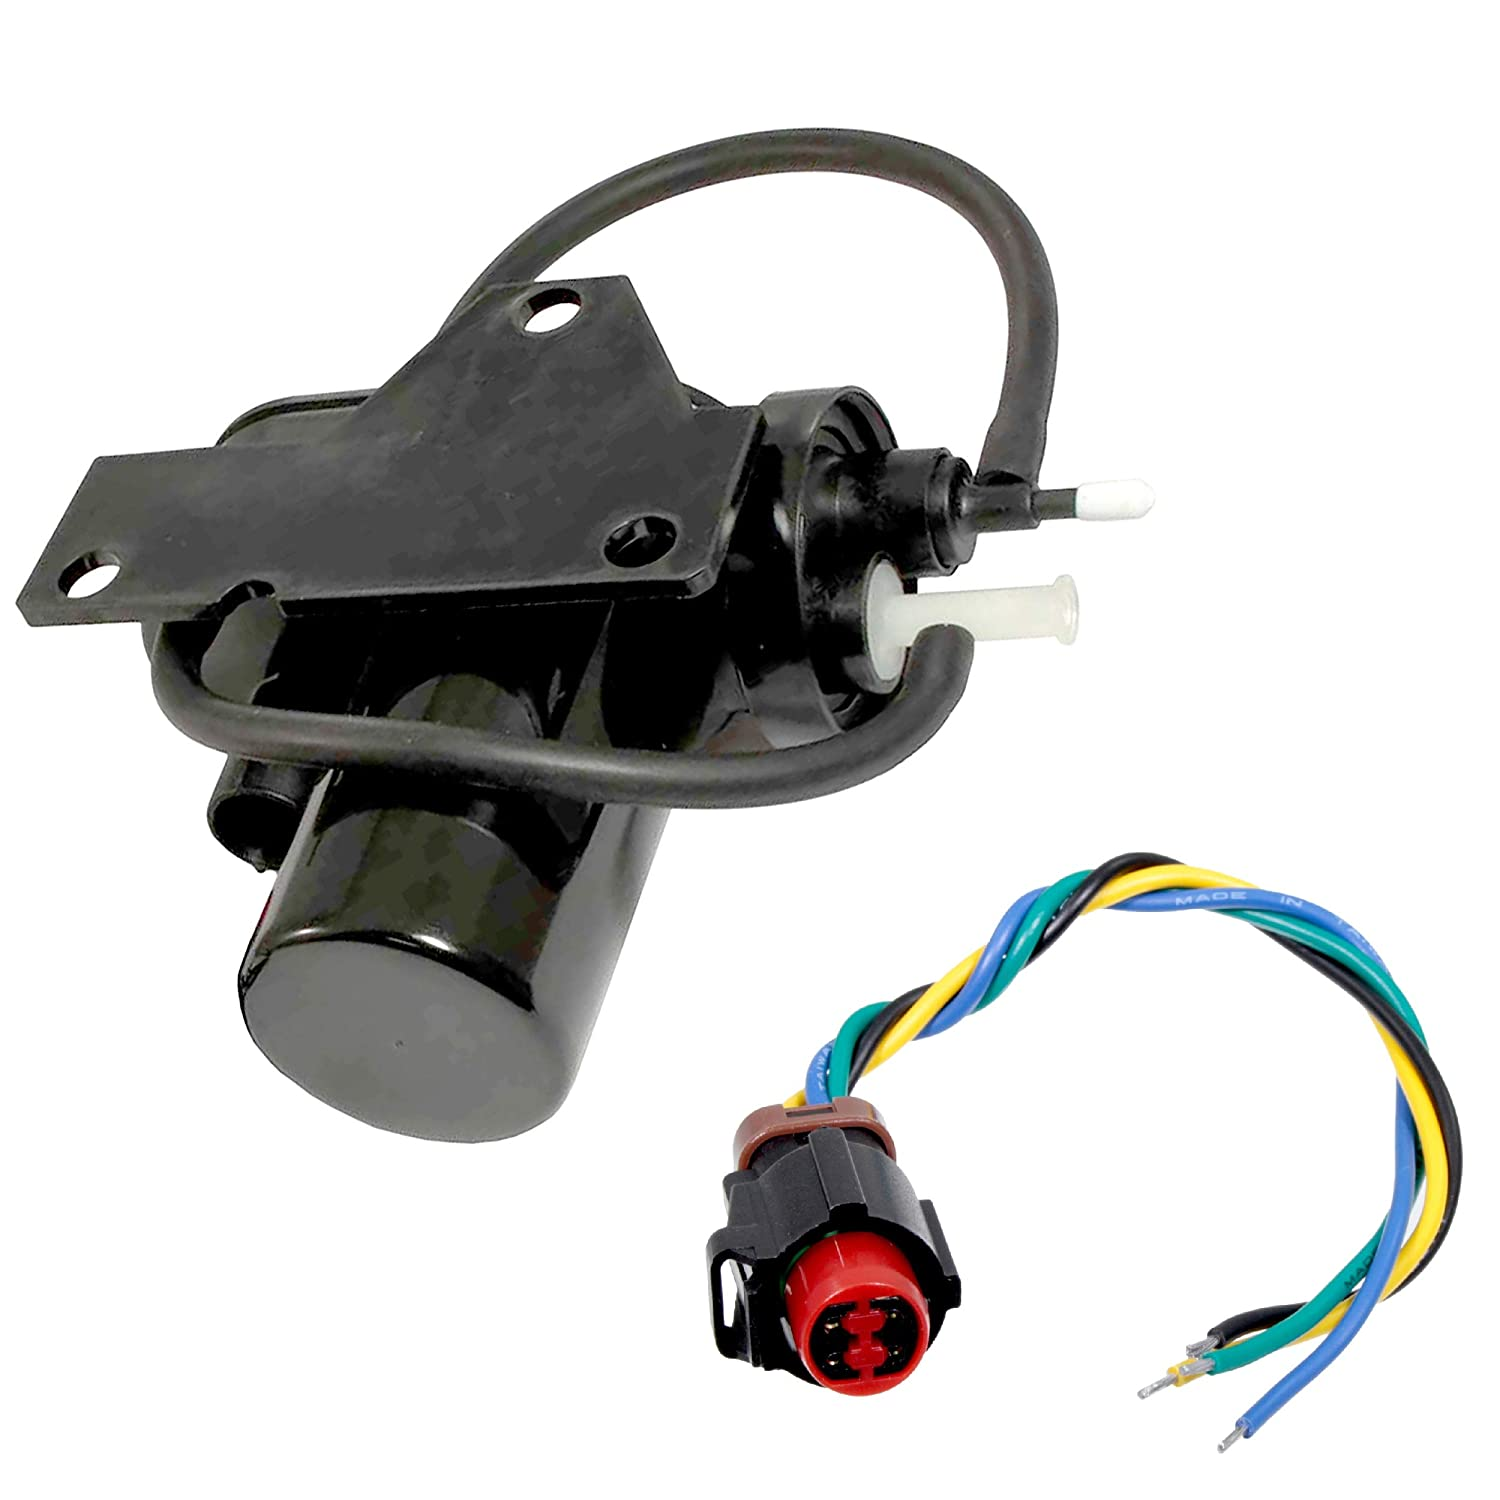 APDTY 015325-Kit Electric Vacuum Pump w/Wiring Harness Pigtail Connector (Can Be Used In Custom Uses To Add Vacuum For HVAC, Cruise Control, 4WD; Factory On Select Dodge Cummins or Ford Diesel)